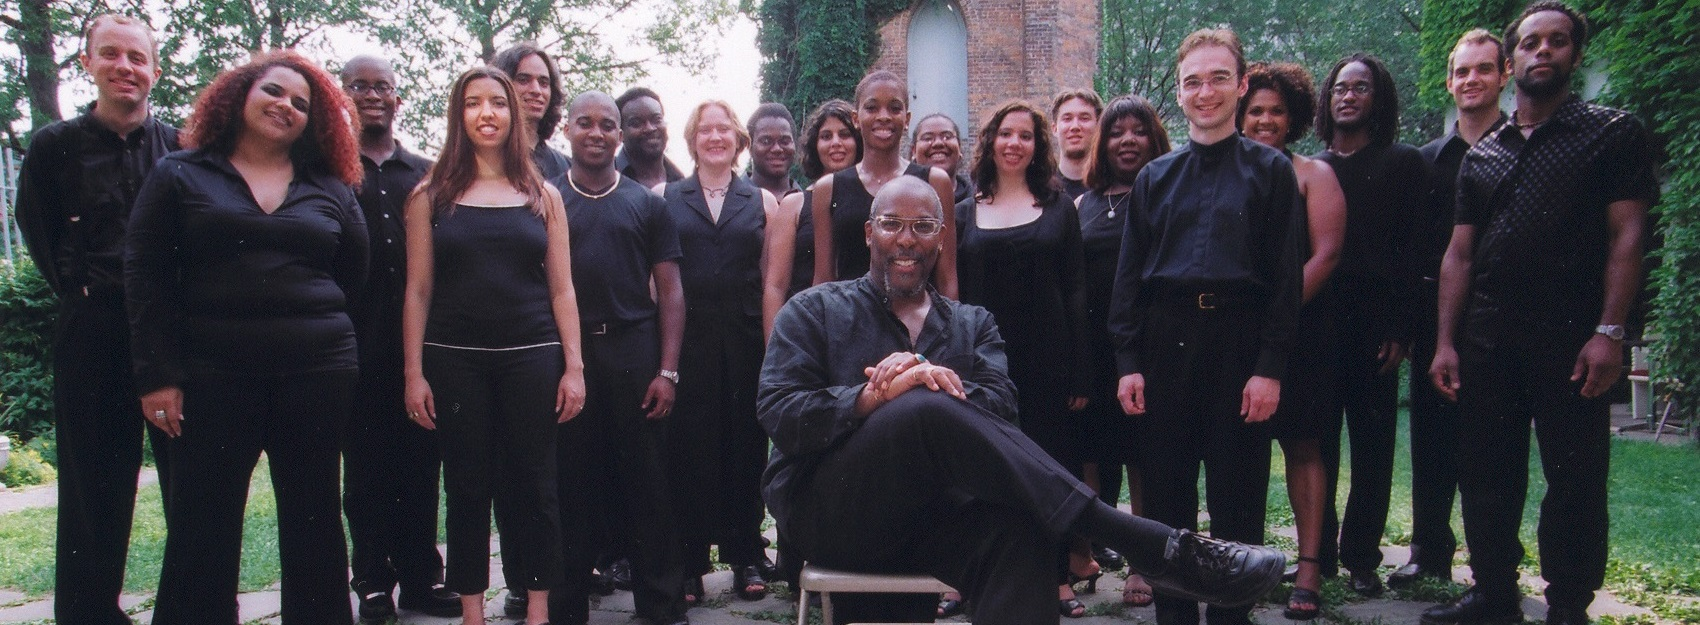 Q&A with director of Tubman's artist in residence, the Nathaniel Dett Chorale